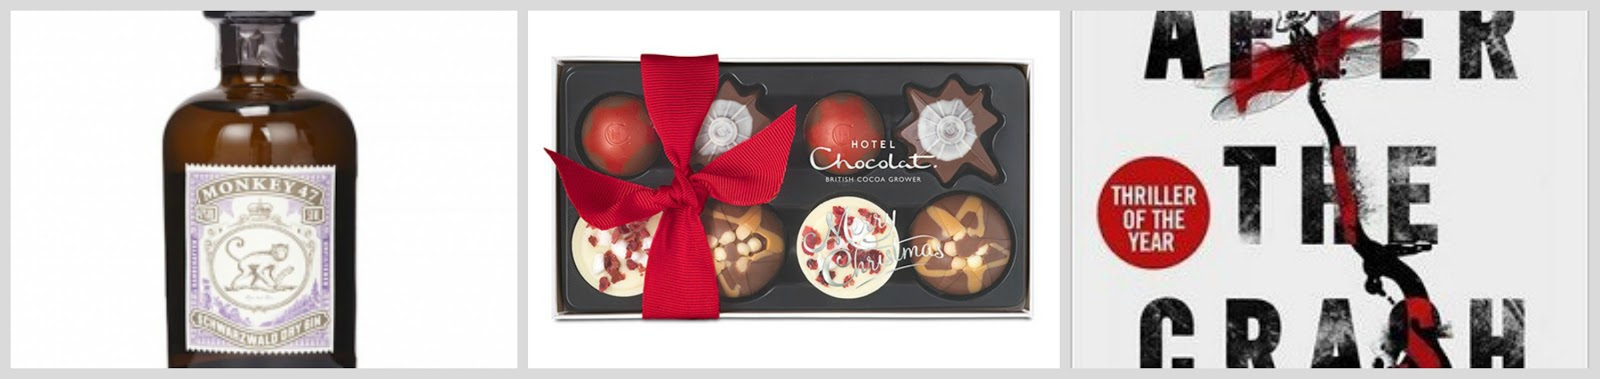 christmas gift guide for her stocking fillers monkey 47 gin miniature hotel chocolat christmas selection after the crash michel bussi